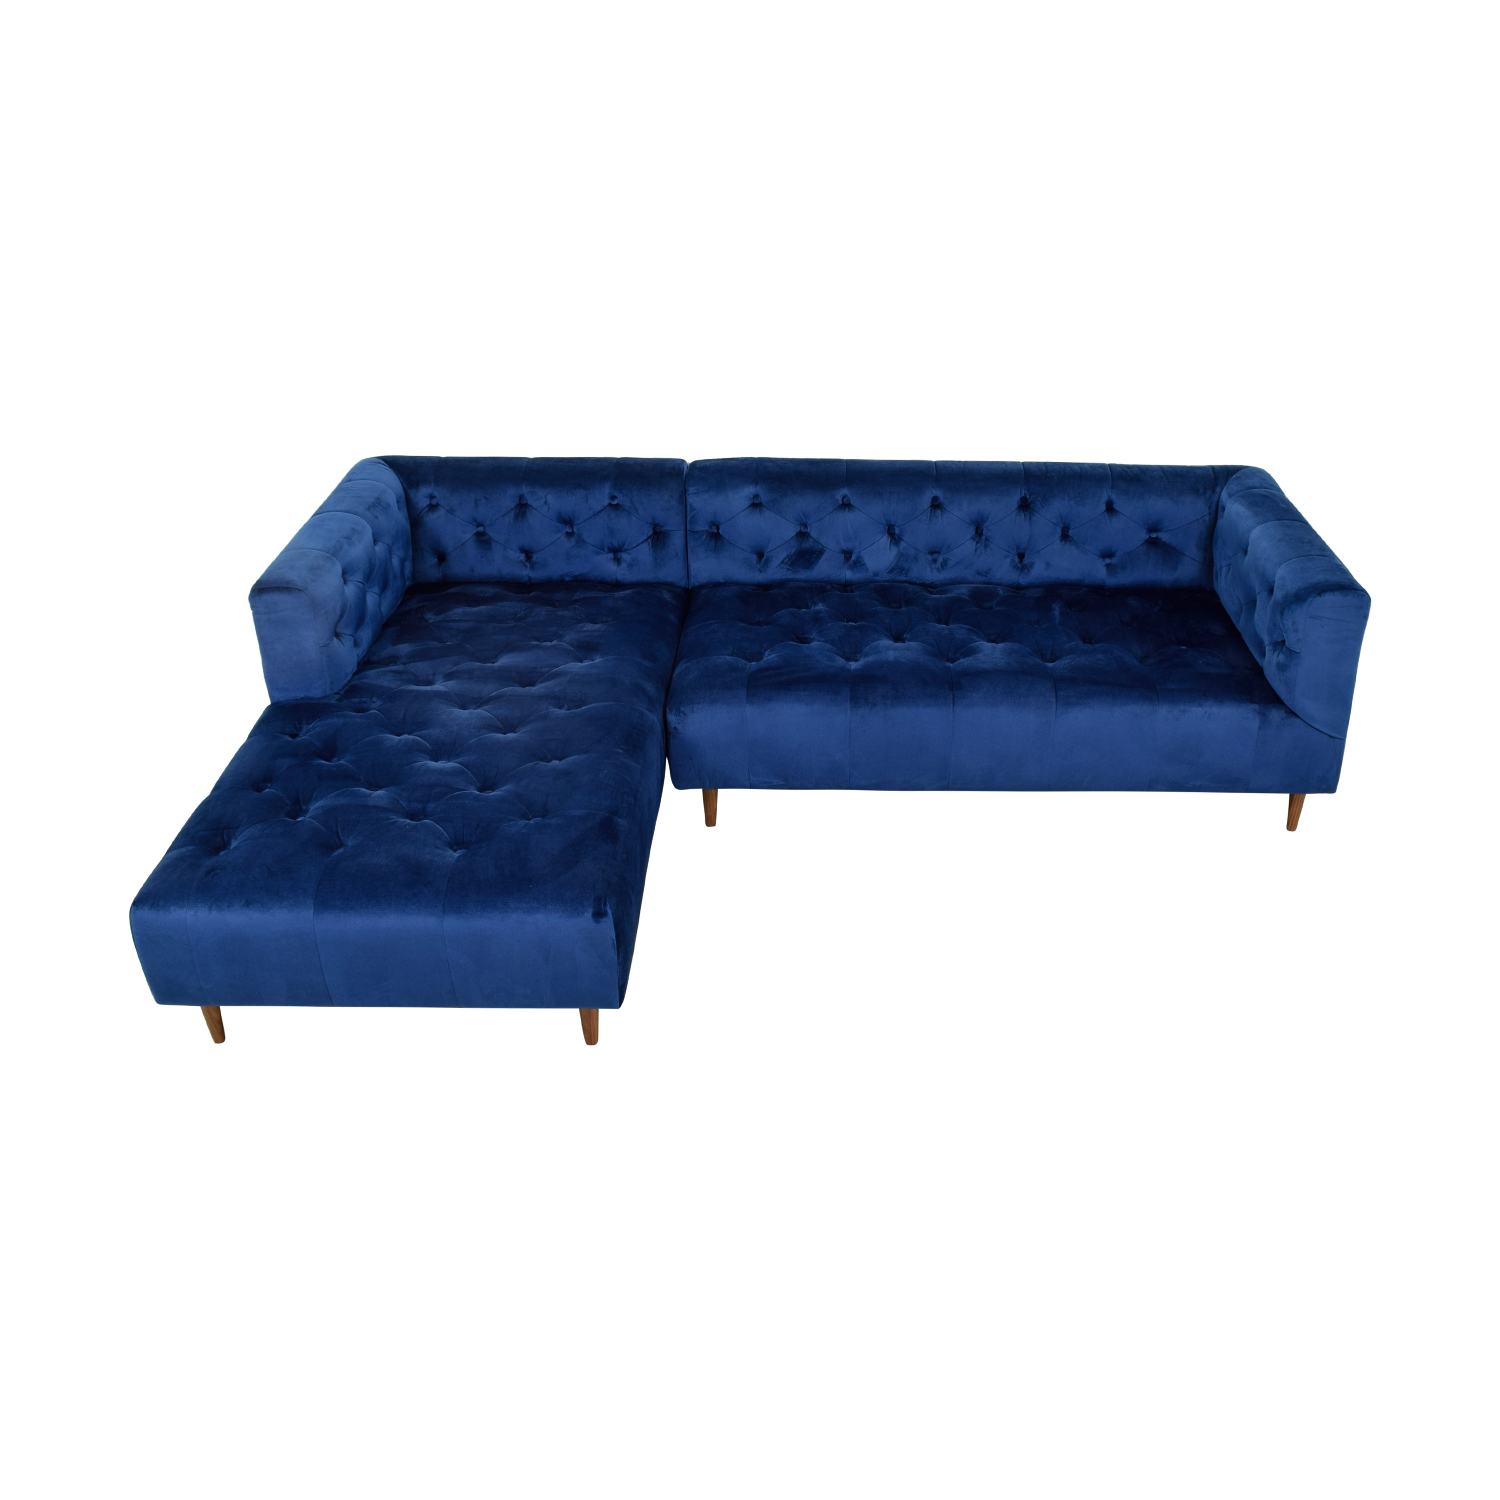 Ms. Chesterfield Blue Left Extended Chaise Sectional used